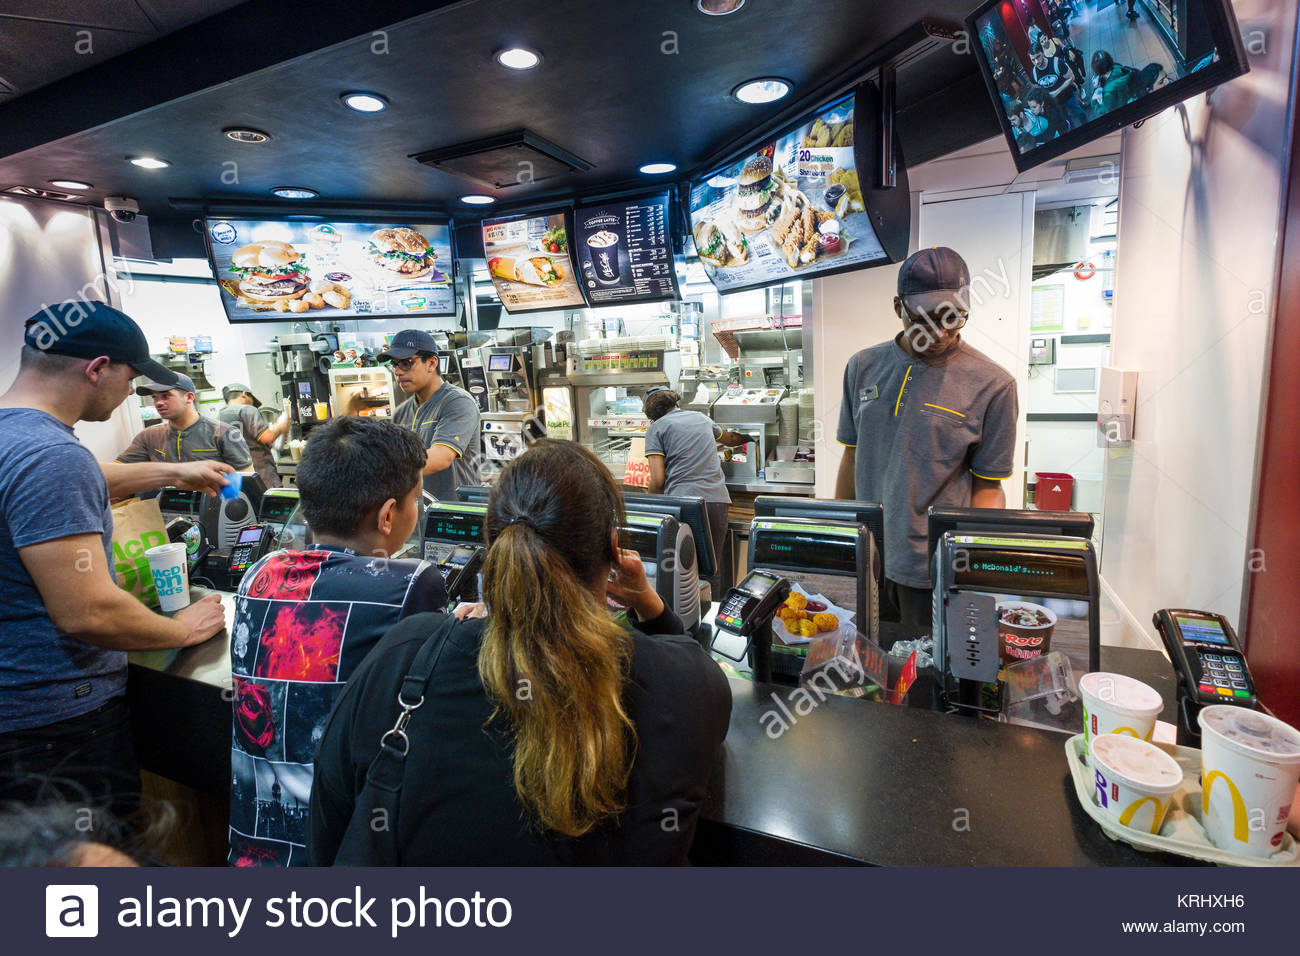 Man working behind the counter at McDonald's fast-food restaurant, London, England, United Kingdom - Stock Image